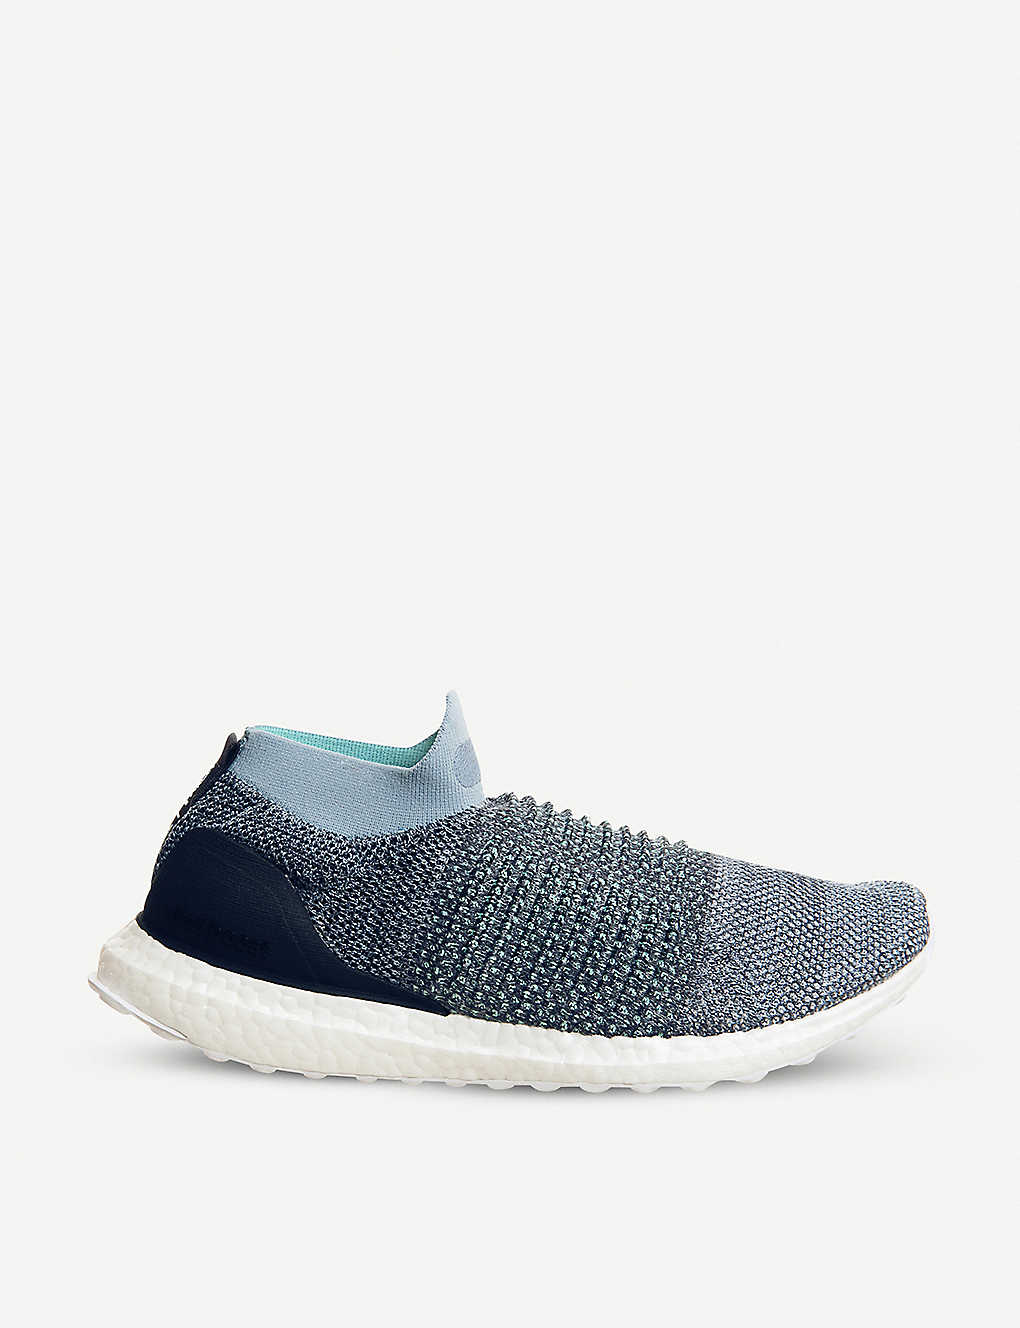 uk availability 06150 d3e0d UltraBoost laceless Parley shoes - Parley raw grey ...